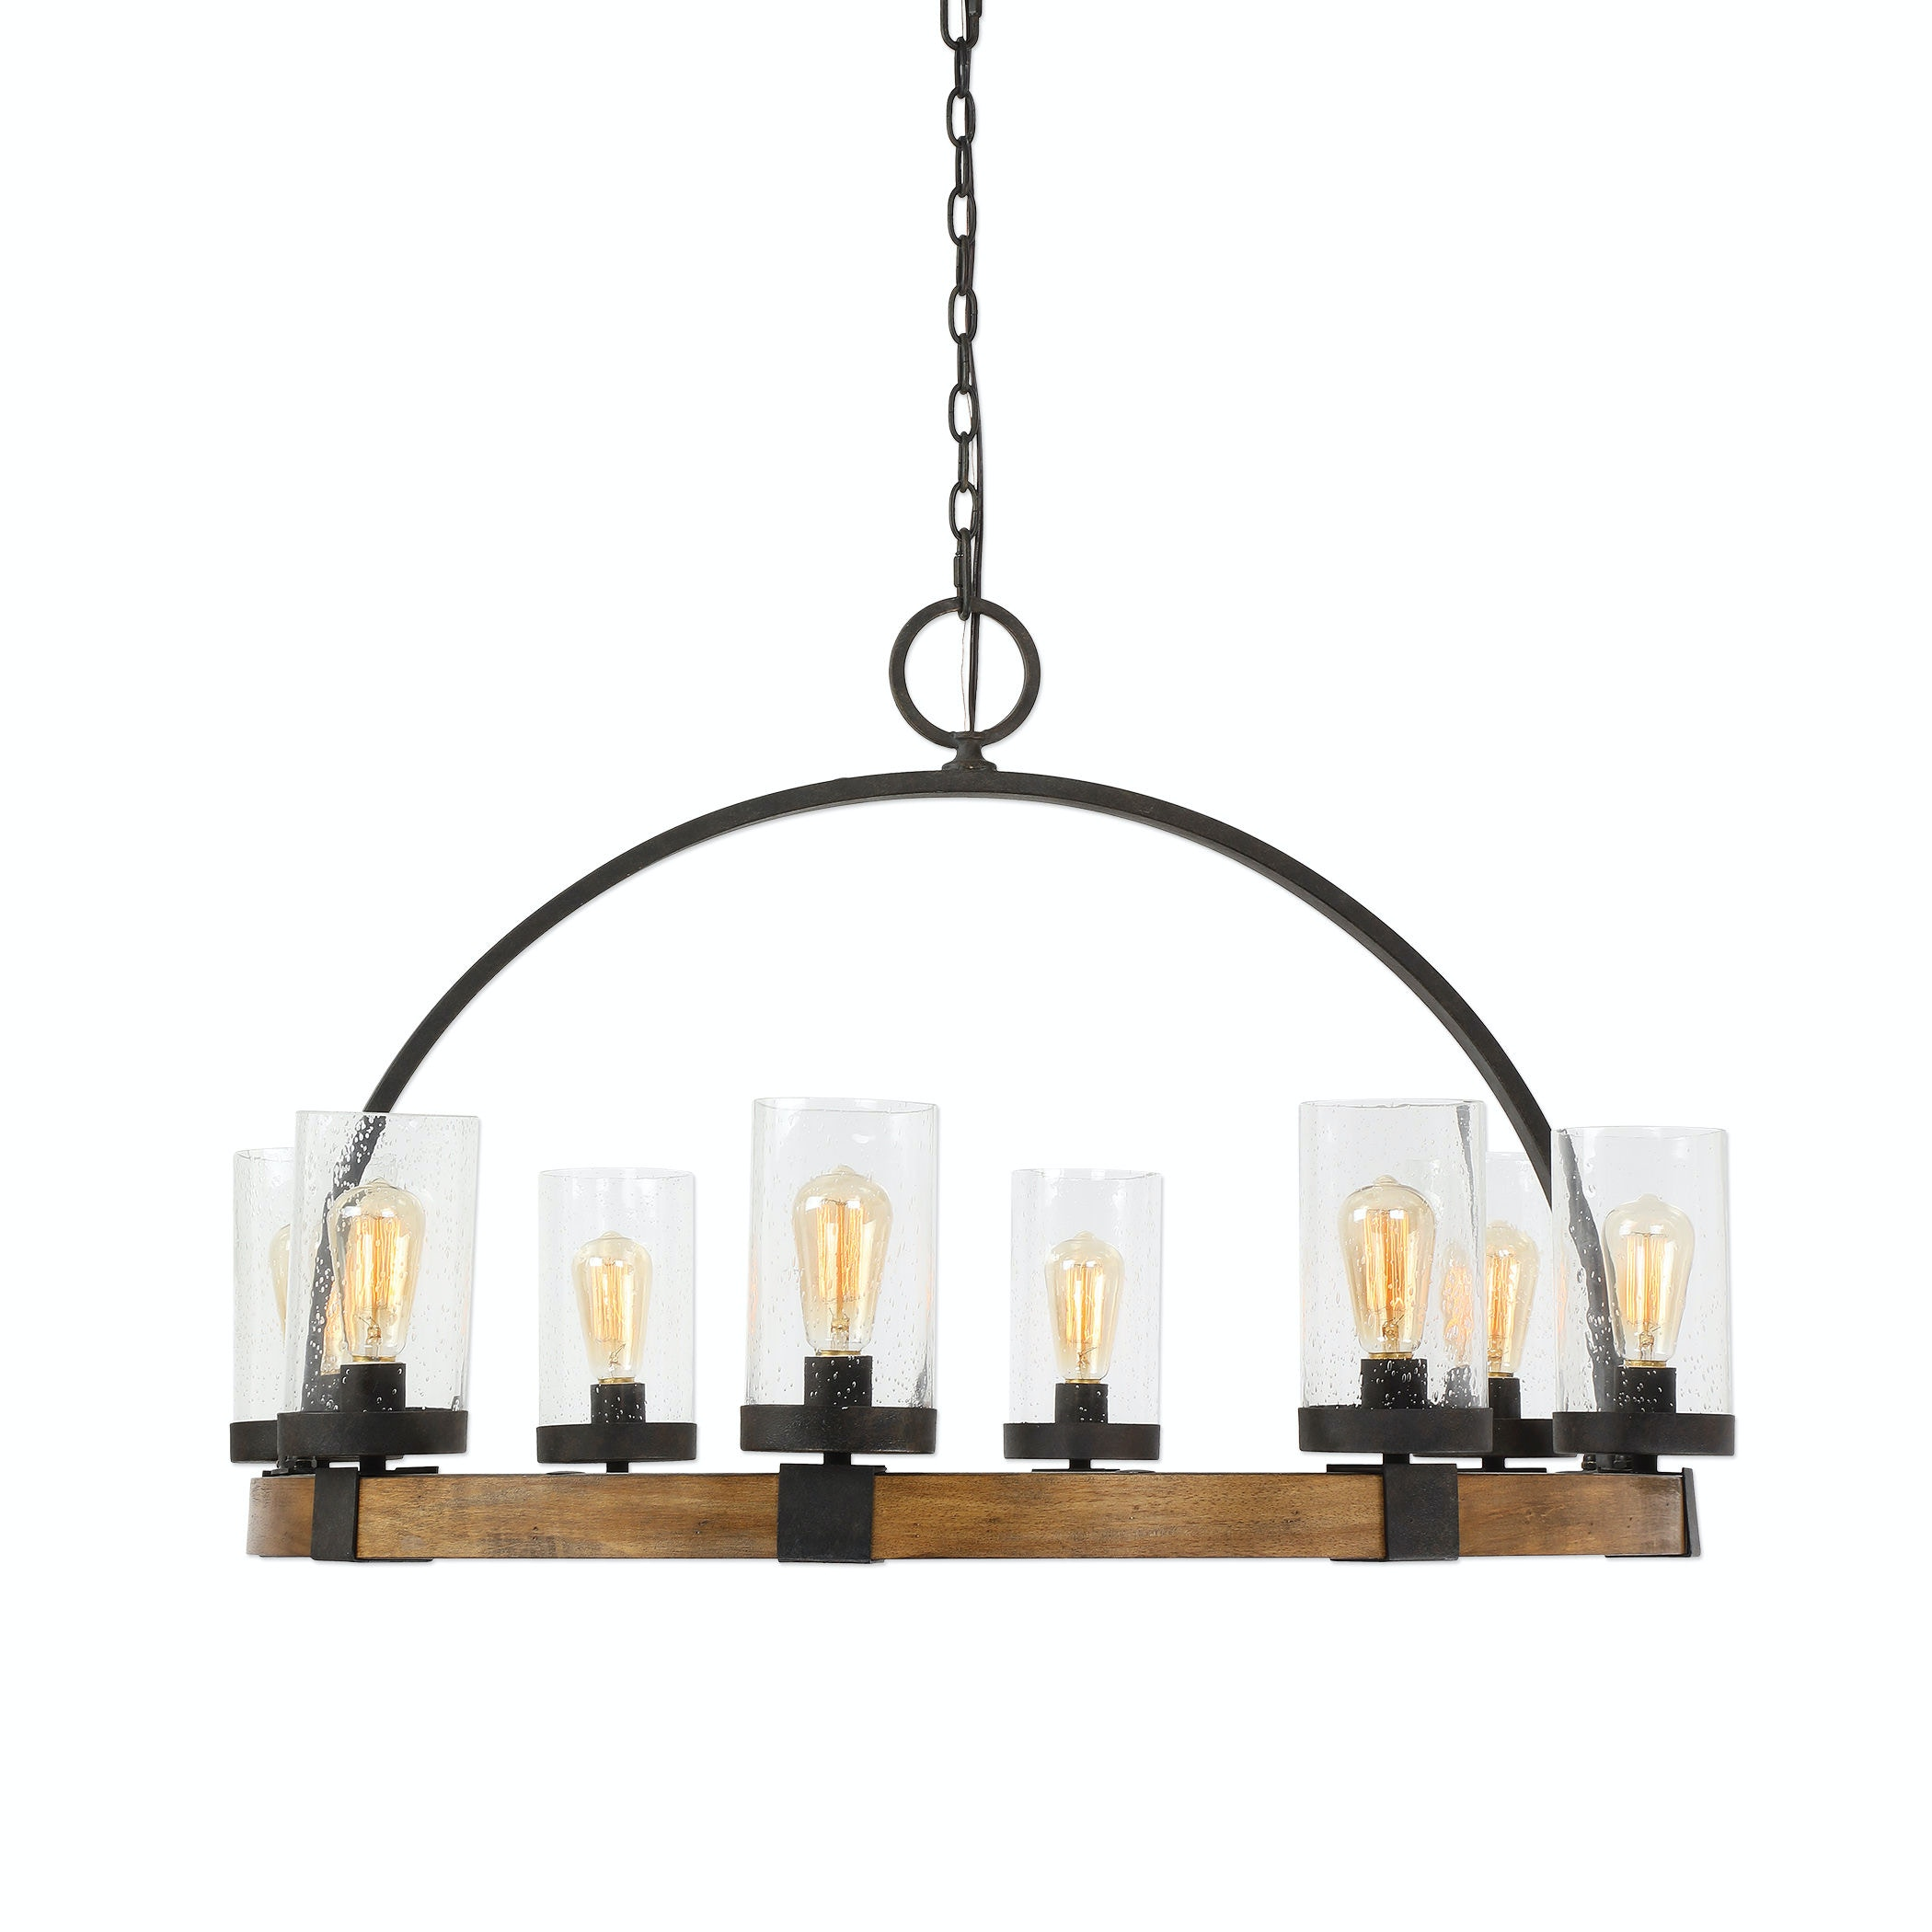 Bob Wire Atwoods Center Wiring Diagrams For A Ceiling Fan And Light Kit Do It Caroldoey Uttermost Lamps Lighting Atwood 8 Wagon Wheel Pendant Rh Bobmillsfurniture Com